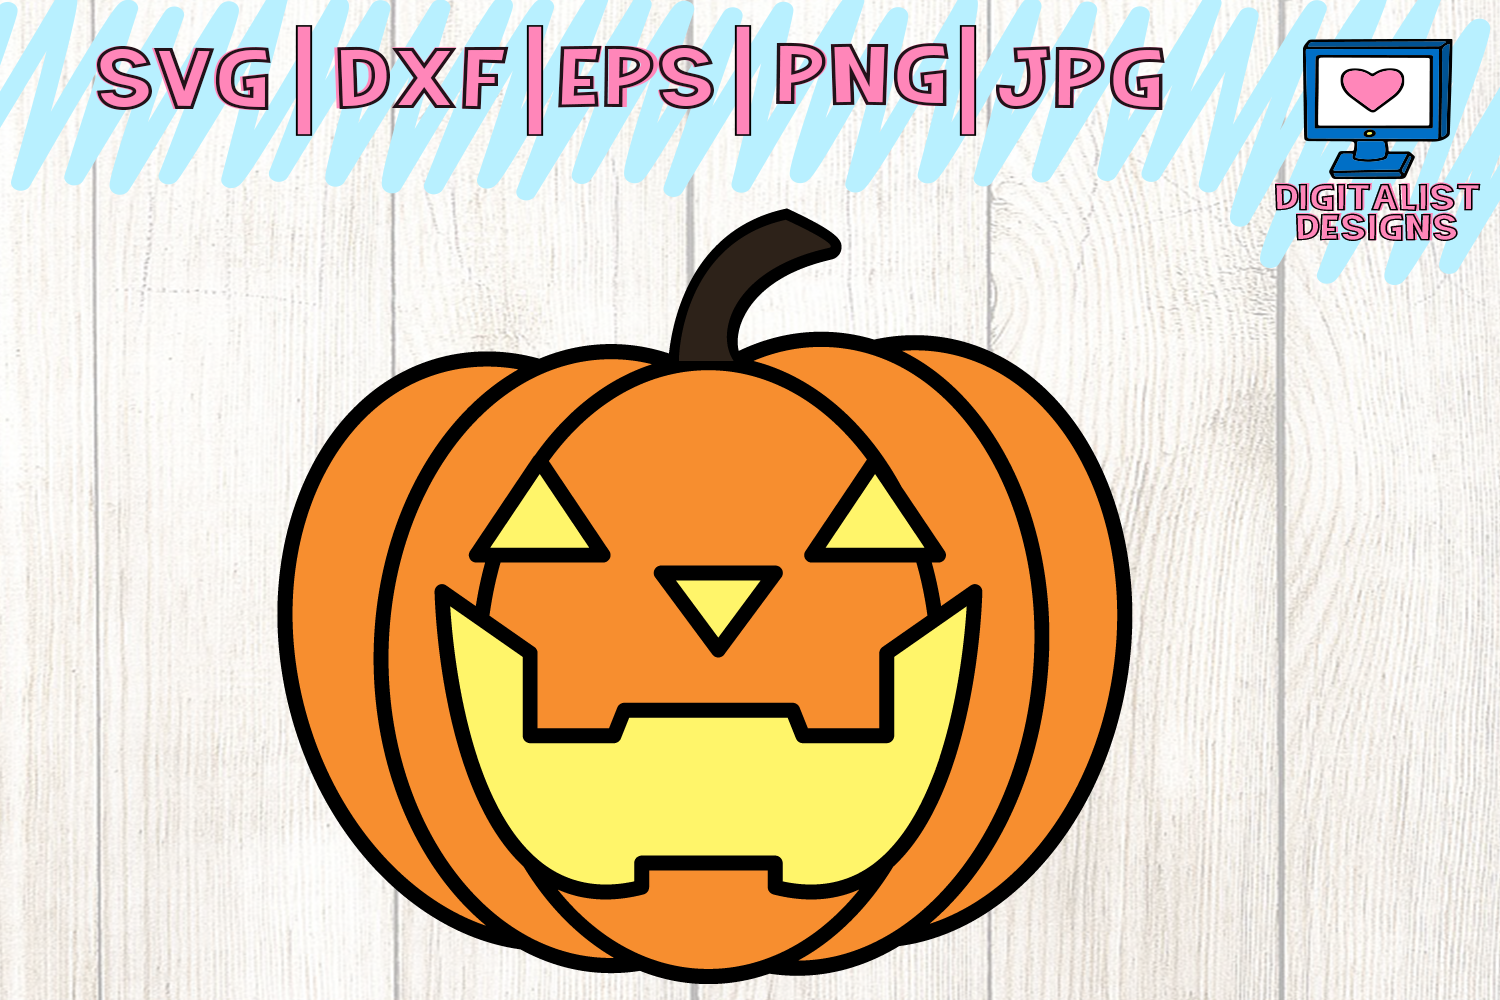 Download Free Jack O Lantern Svg Graphic By Digitalistdesigns Creative Fabrica for Cricut Explore, Silhouette and other cutting machines.